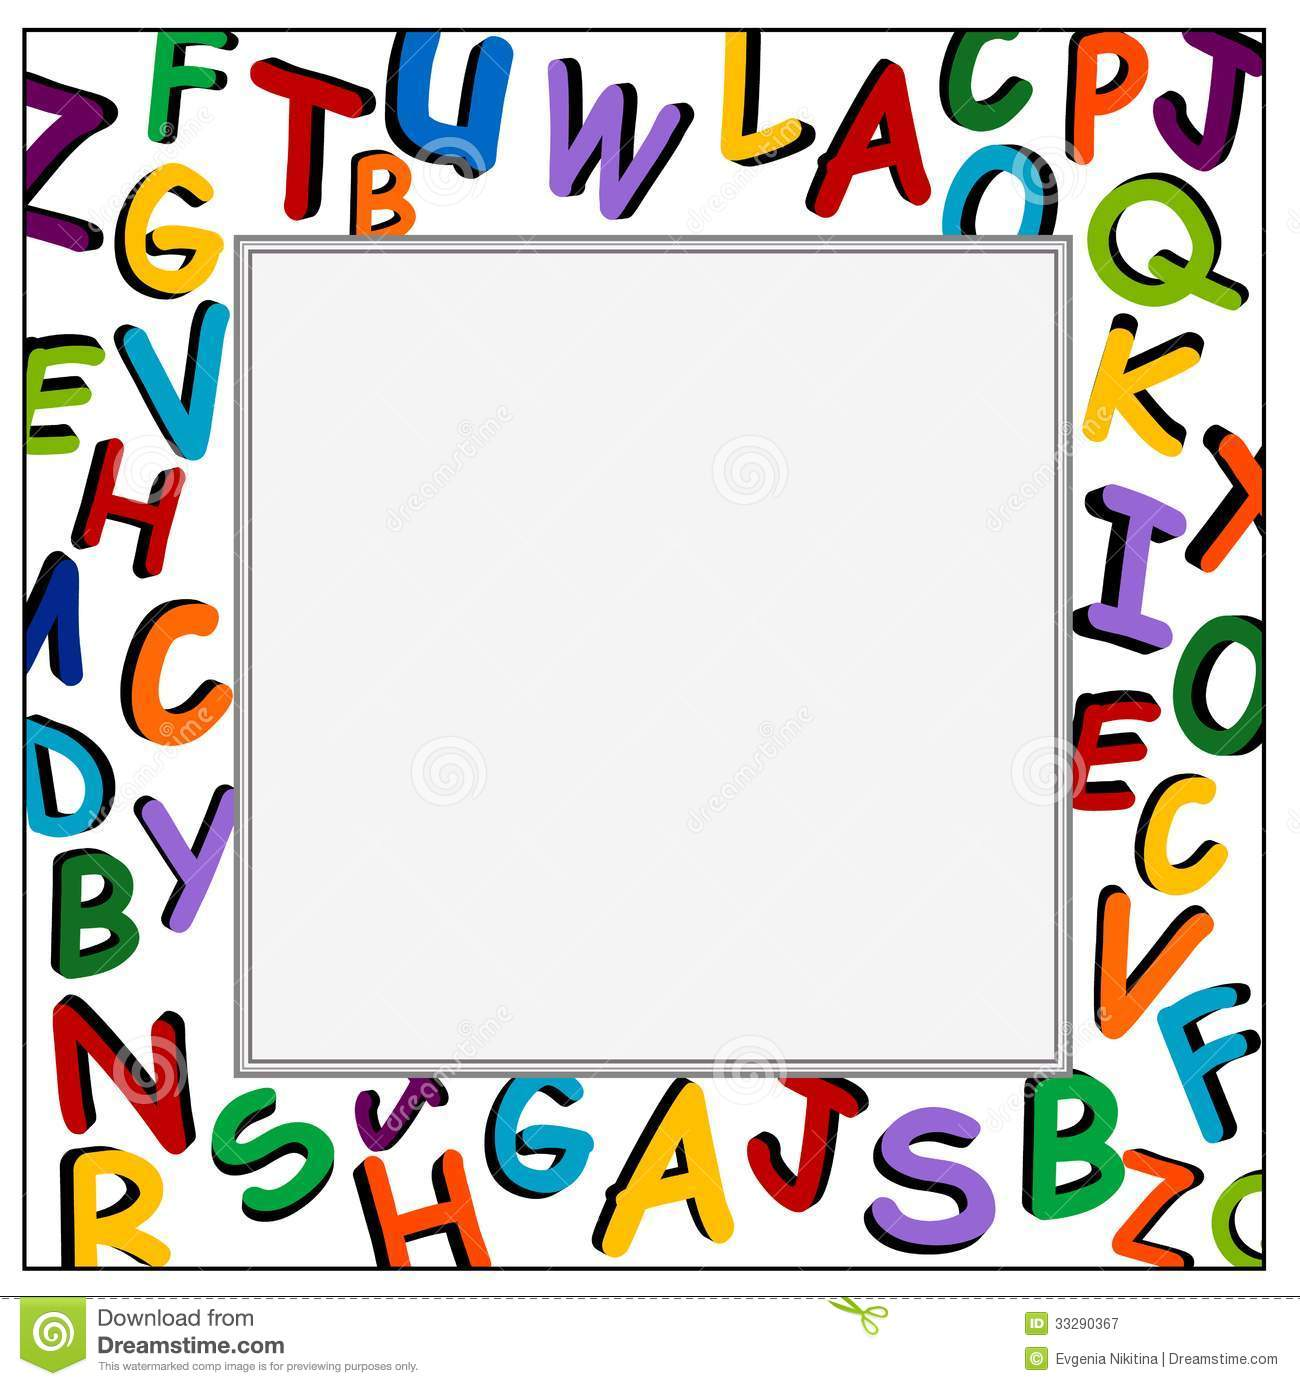 education borders clipart clipart suggest Free Clip Art Borders and Frames microsoft office clip art borders free download